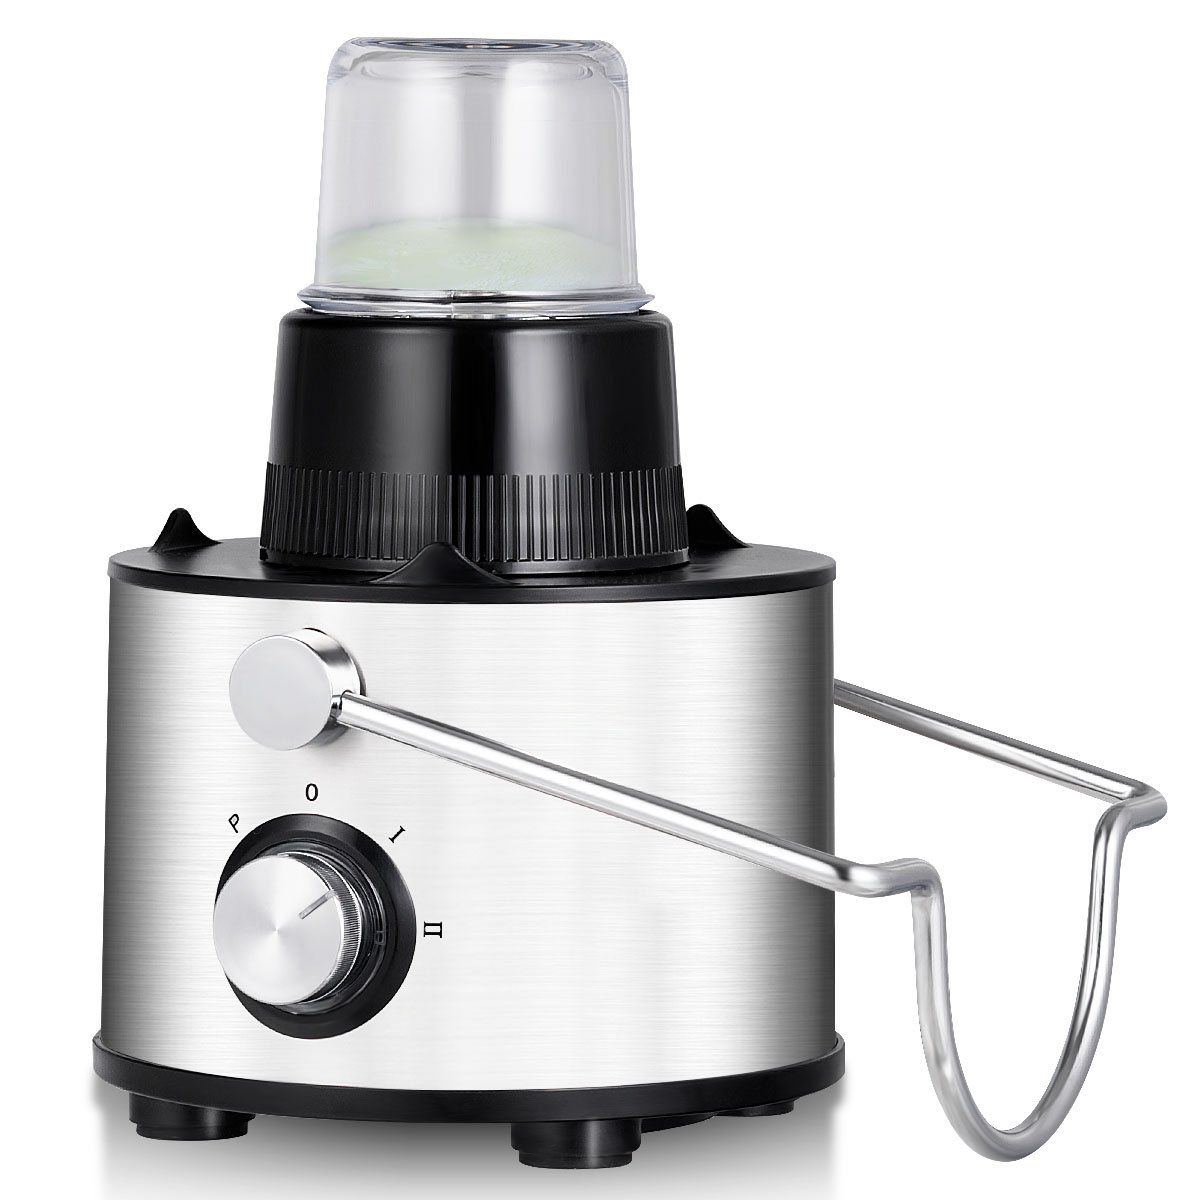 Costway 5in1 juice extractor wide mouth stainless steel